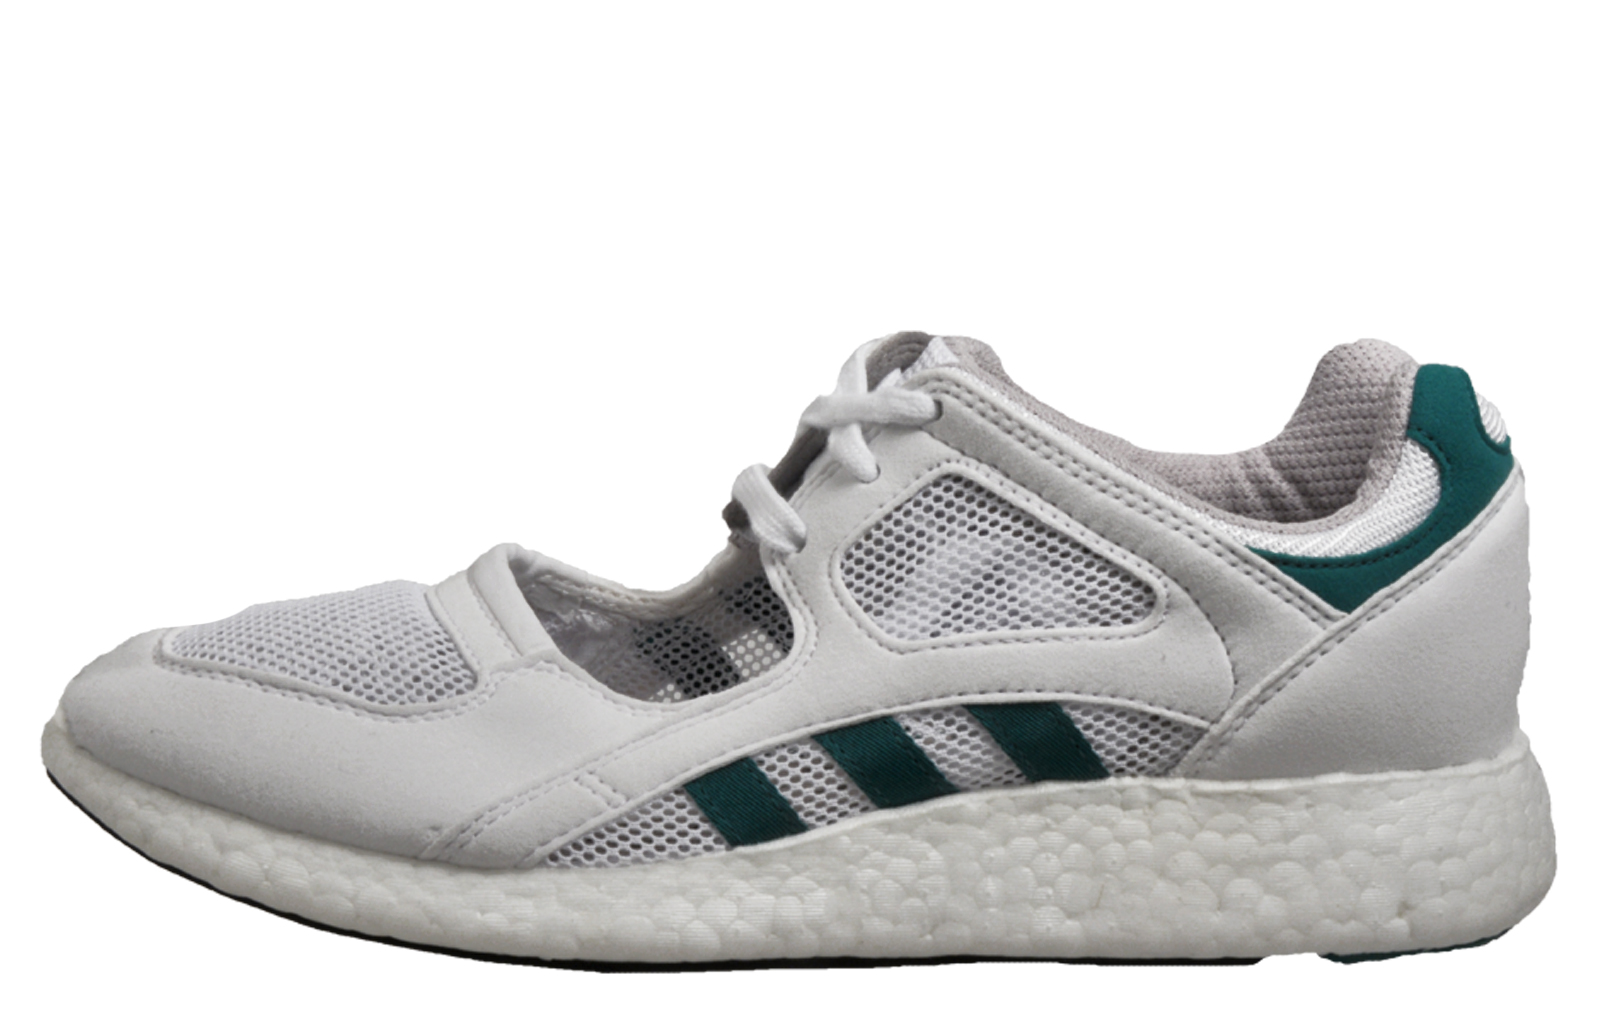 Adidas Originals Equipment Racing 91/16 Boost - AD148403